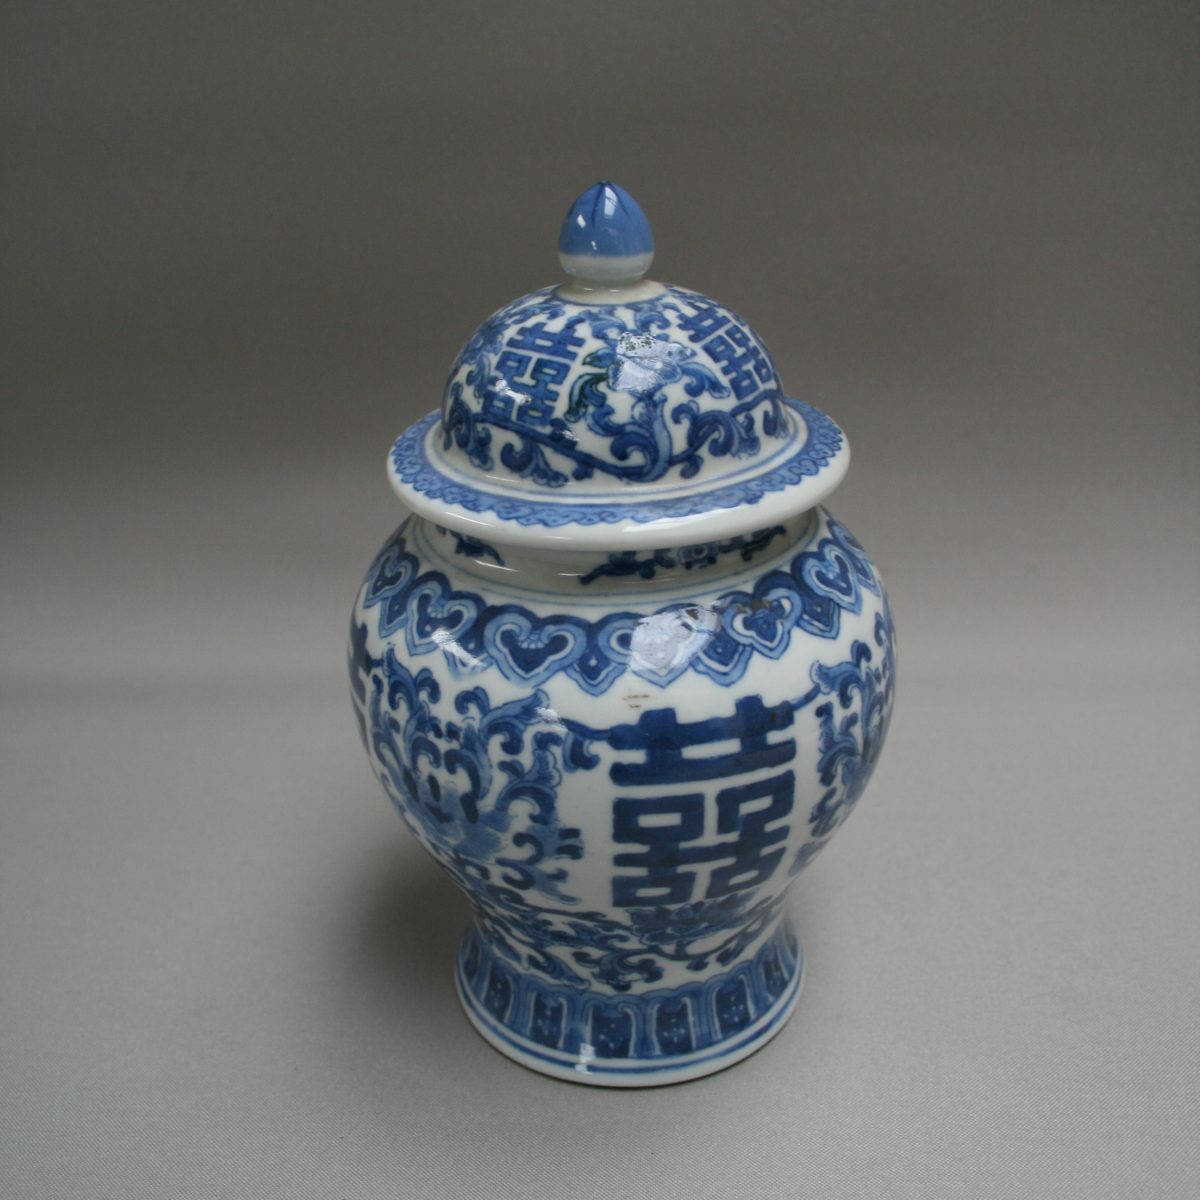 A blue and white lidded vase